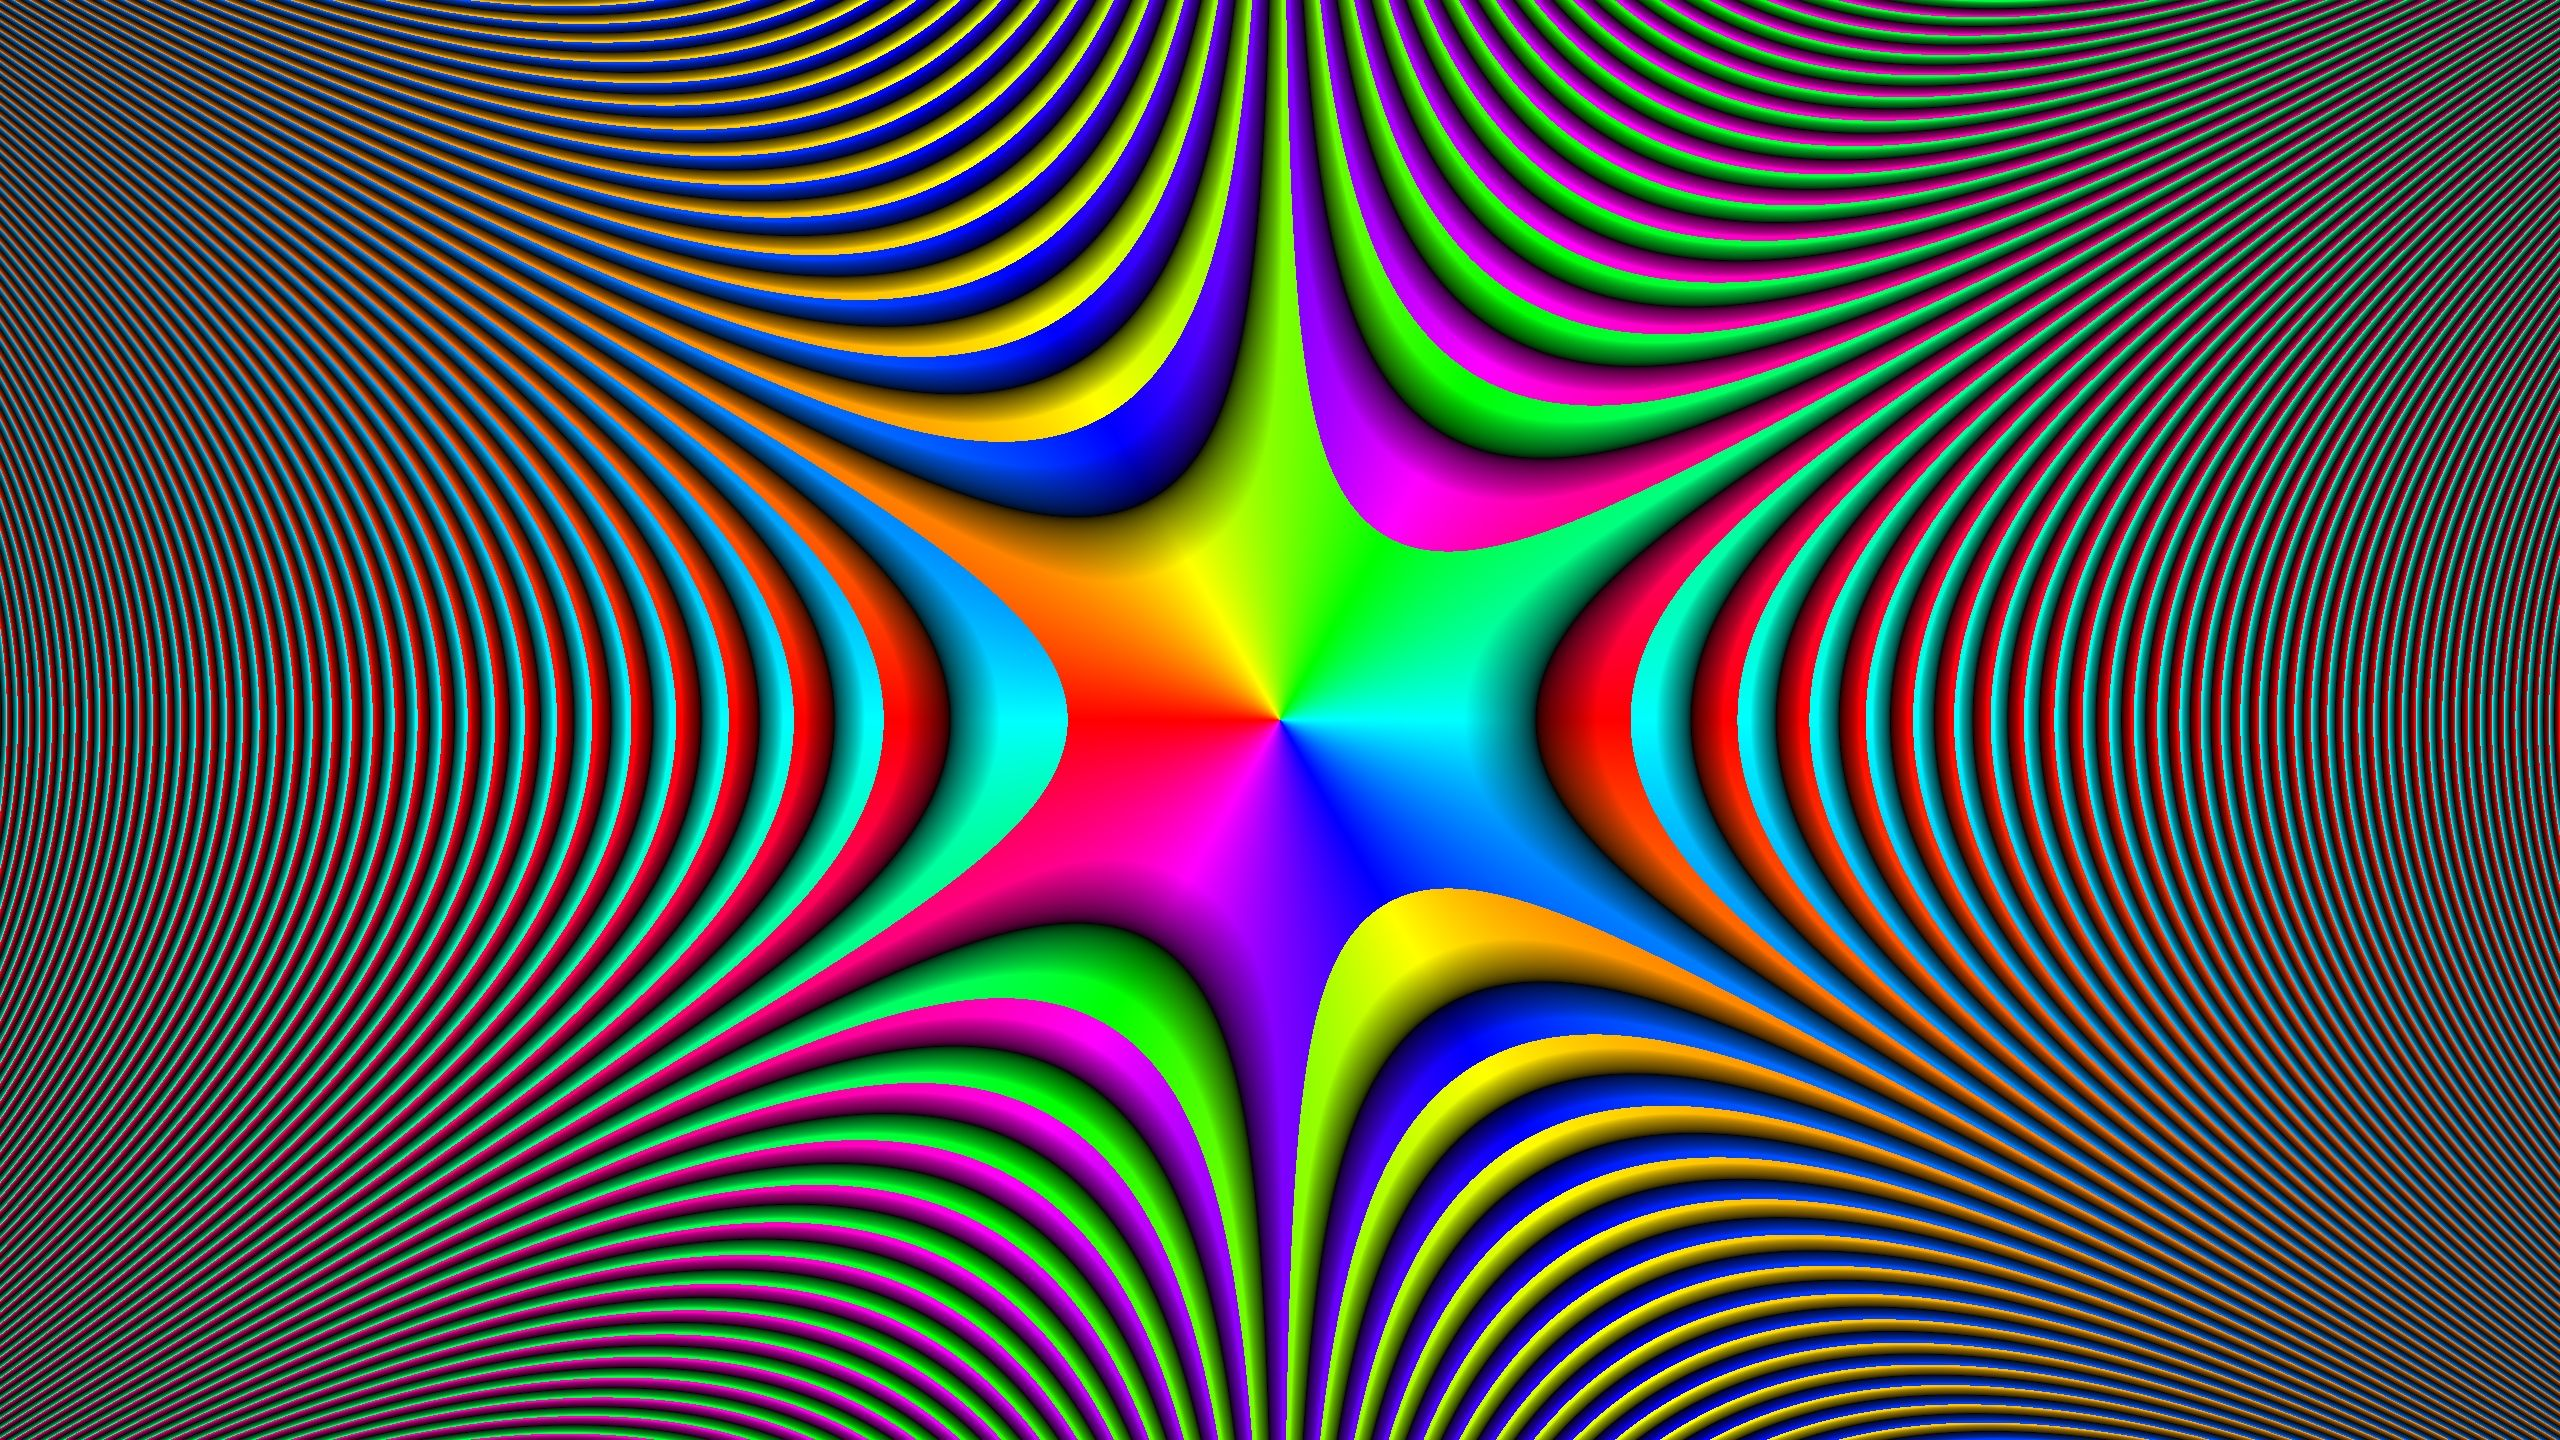 Moving Illusion Backgrounds Desktop Background Art Optical Illusion Wallpaper Abstract Wallpaper Backgrounds